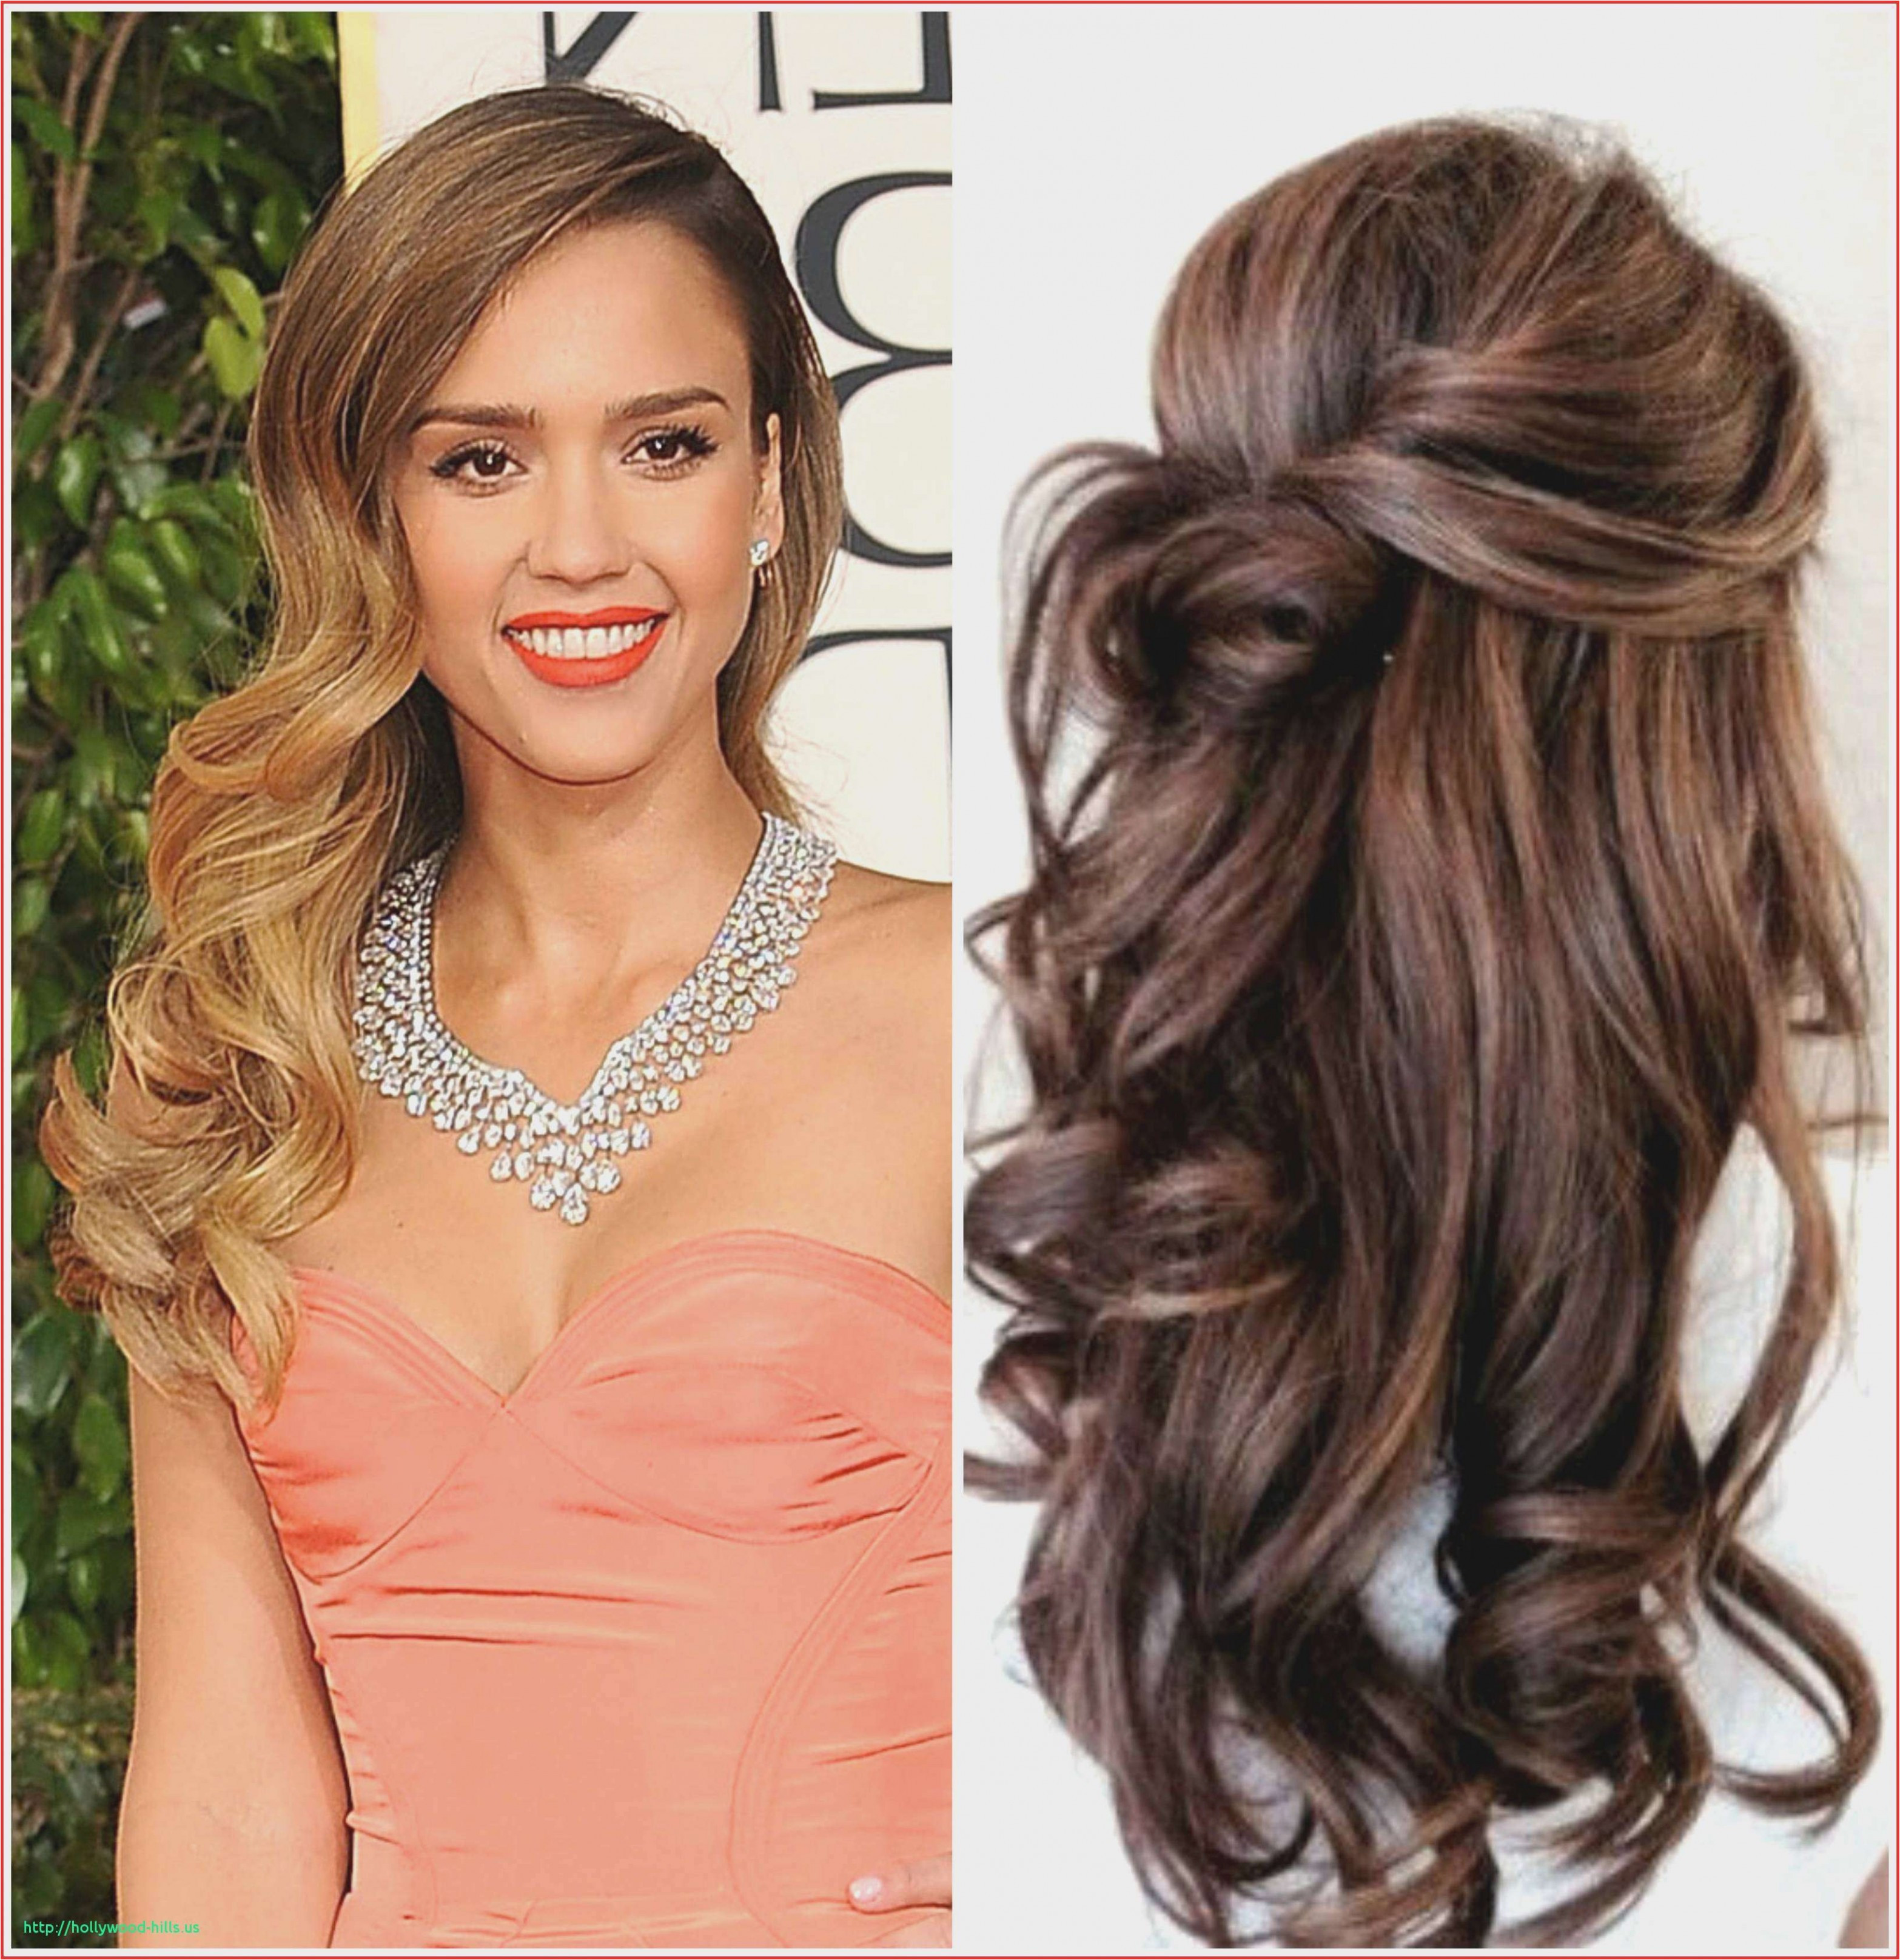 New Simple Hairstyles for Girls New Fresh Simple Hairstyles for Girls with Medium Hair – Aidasmakeup